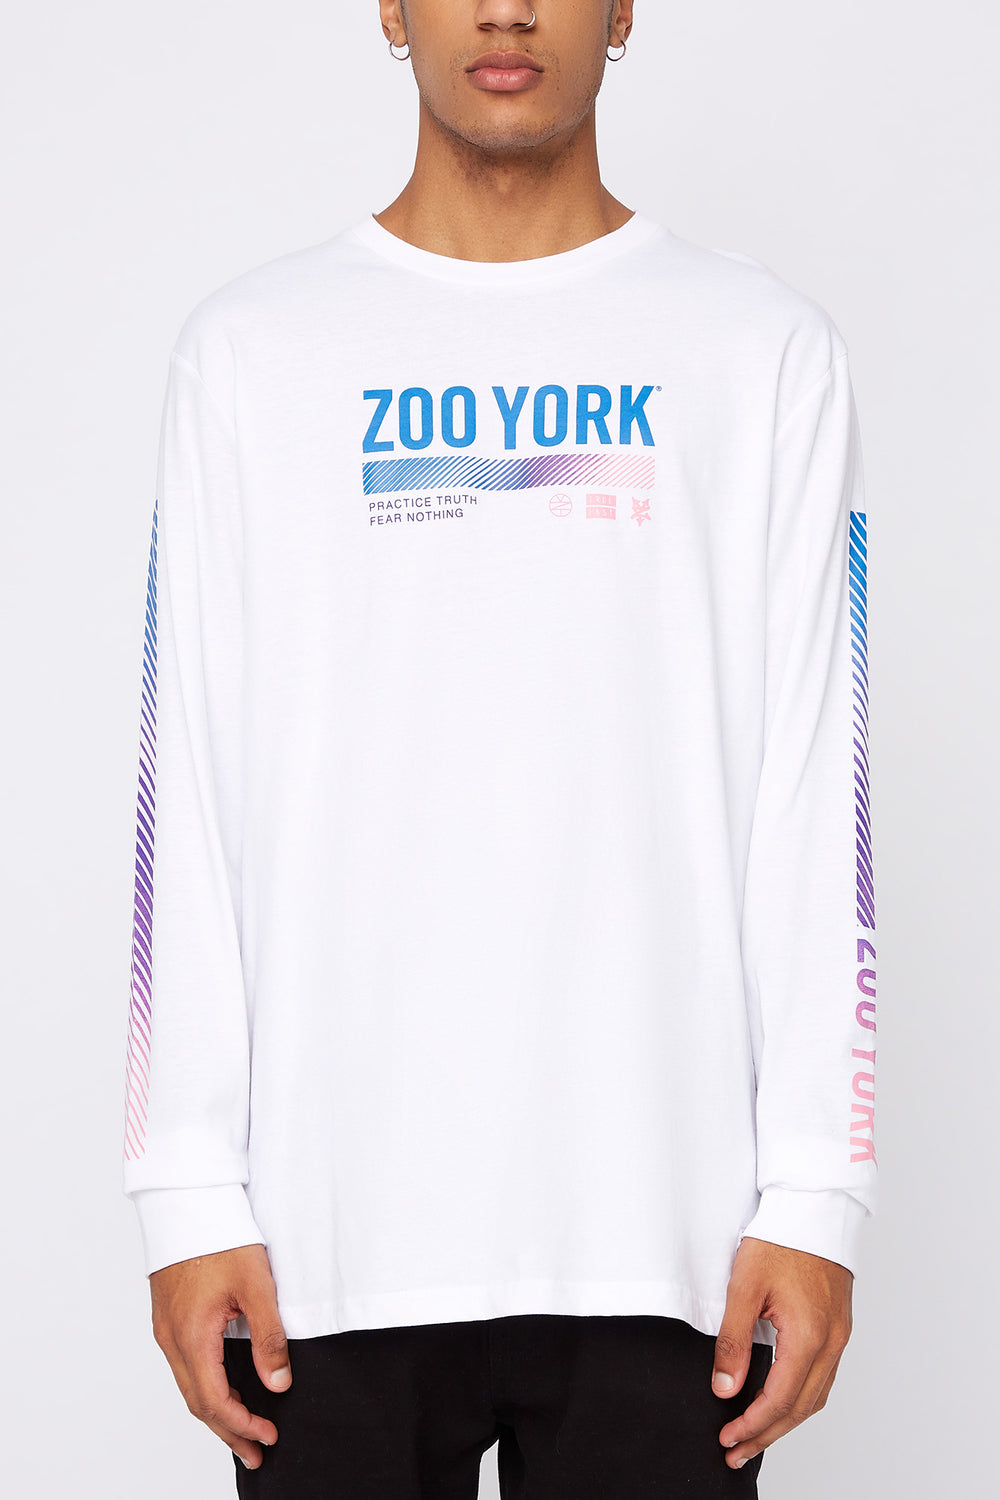 Zoo York Mens Practice Truth Long Sleeve Shirt White